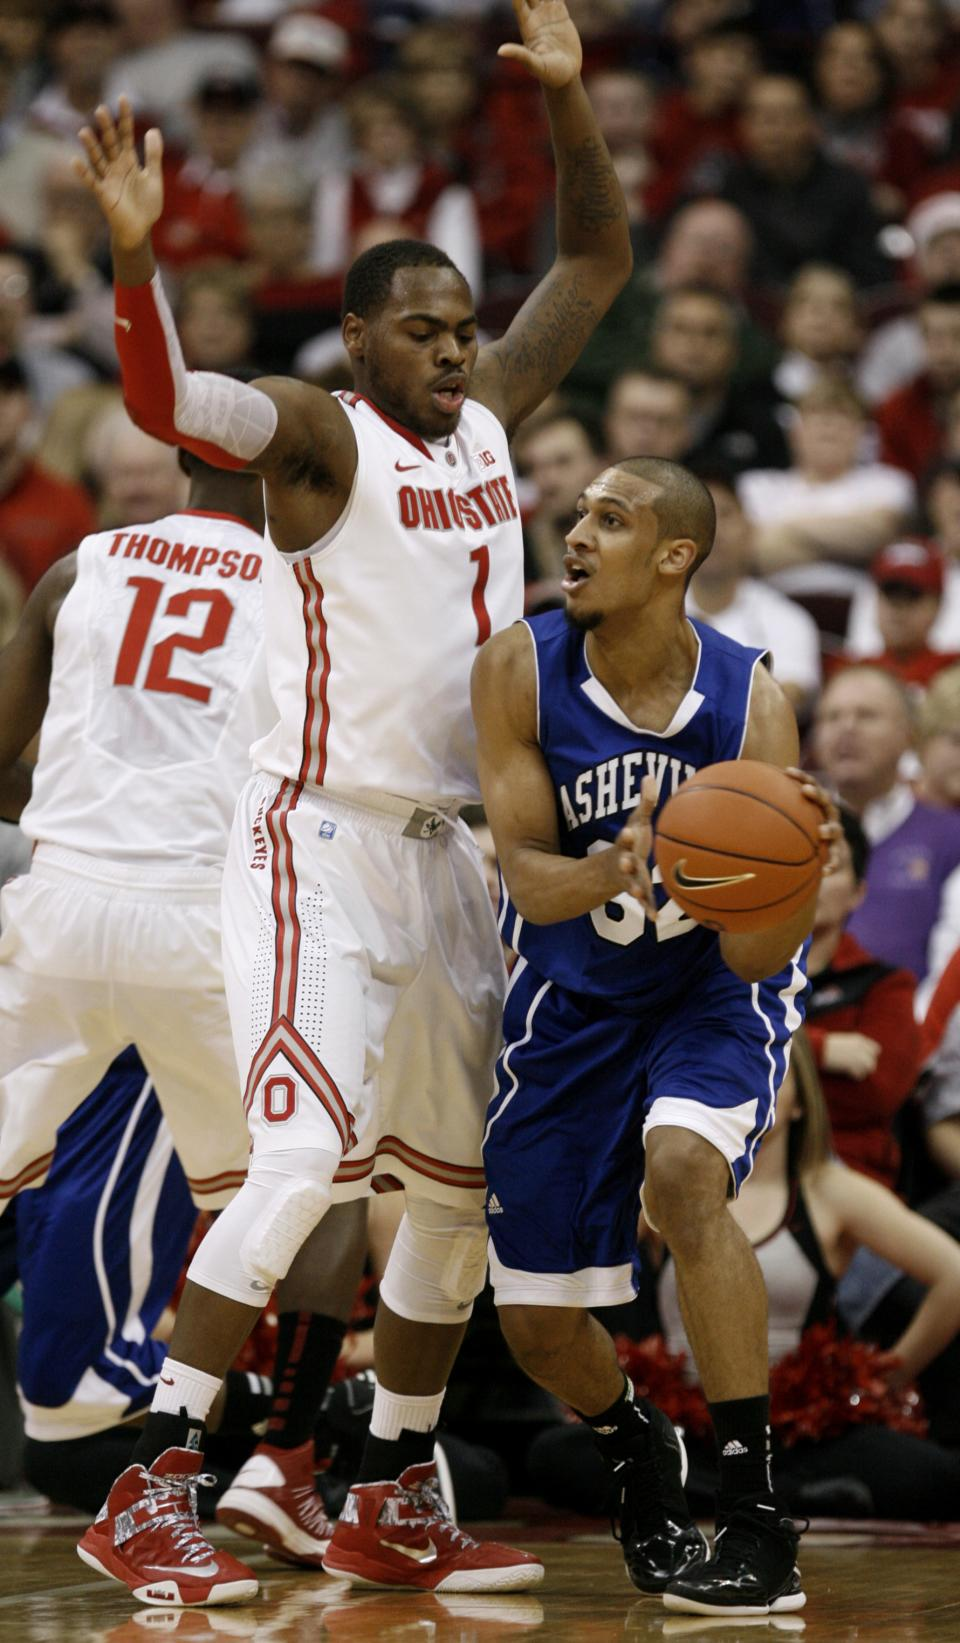 UNC-Asheville's Will Weeks, right, looks to pass around Ohio State's Deshaun Thomas during the first half of an NCAA college basketball game in Columbus, Ohio, Saturday, Dec. 15, 2012. (AP Photo/Paul Vernon)